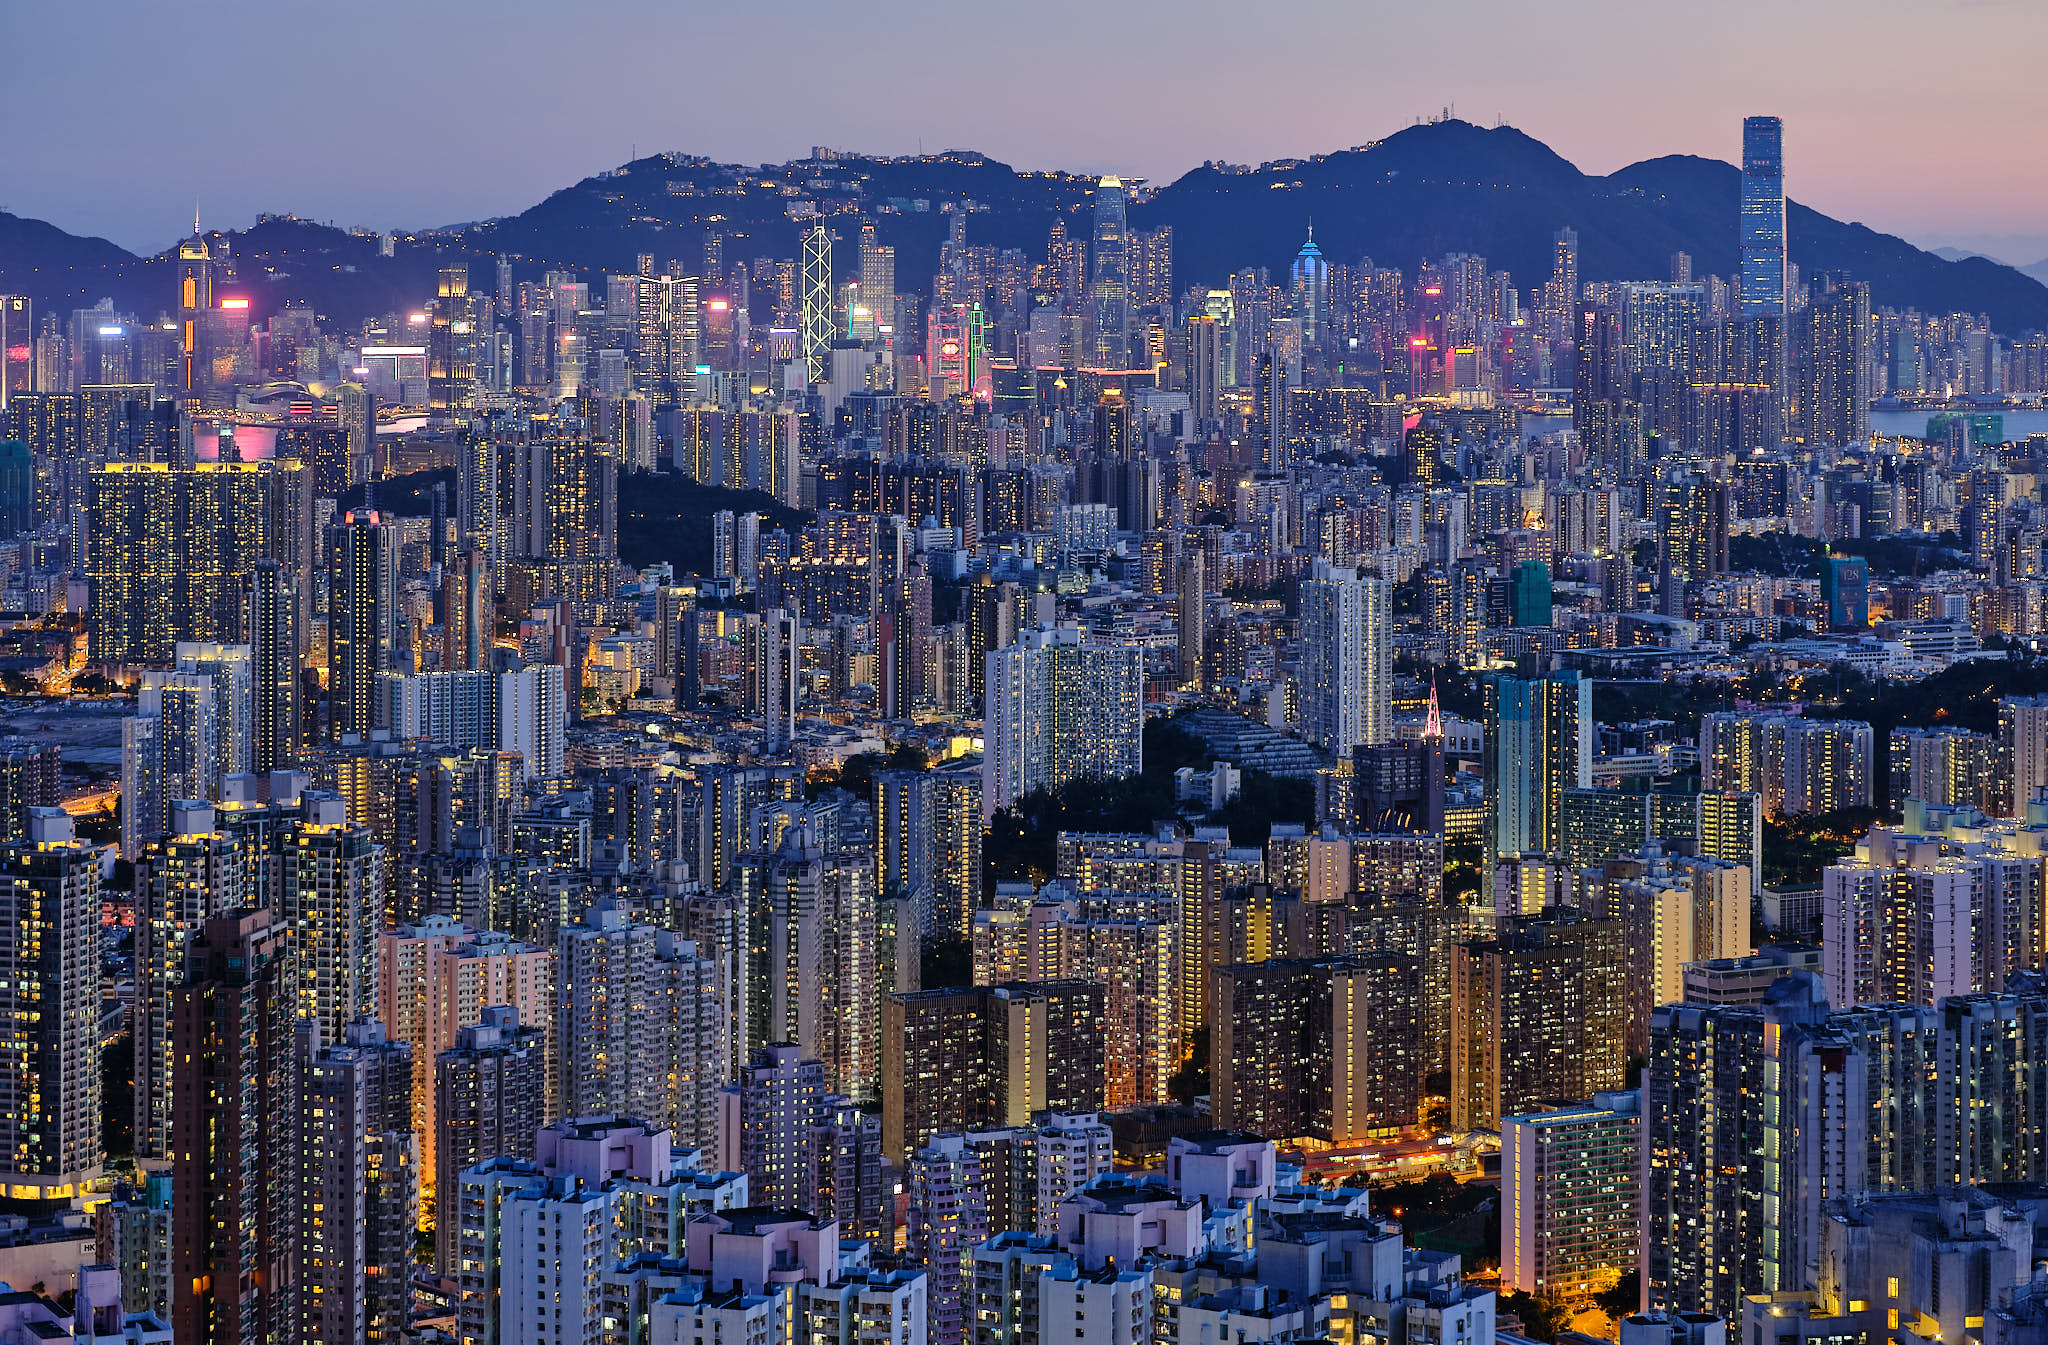 Blue hour overlooking Kowloon and Hong Kong Island from Sha Tin Pass Road